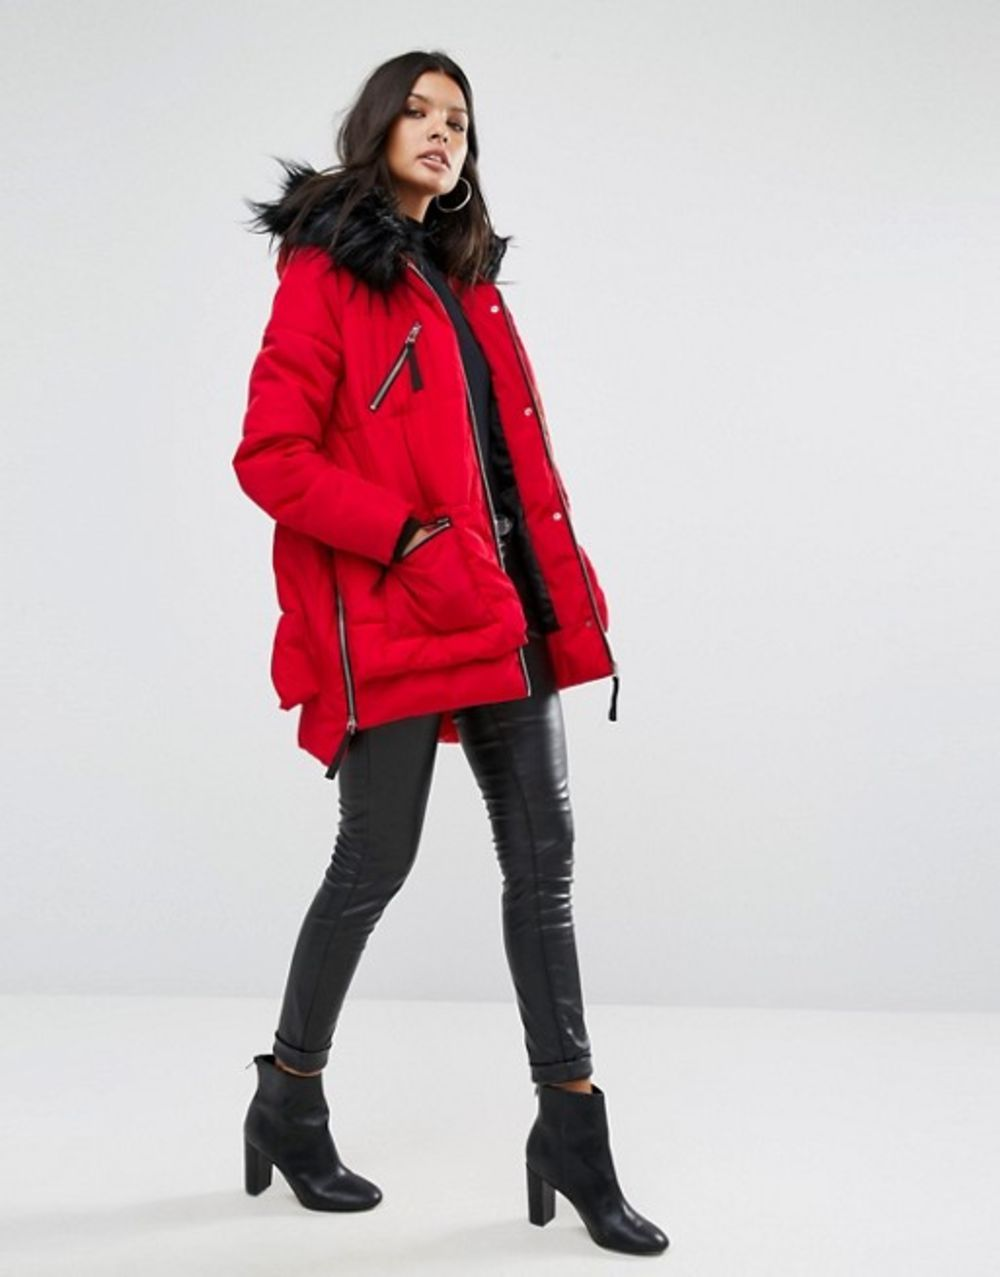 River Island Faux Fur Hooded Padded Jacket | Fall Outerwear Trends ...